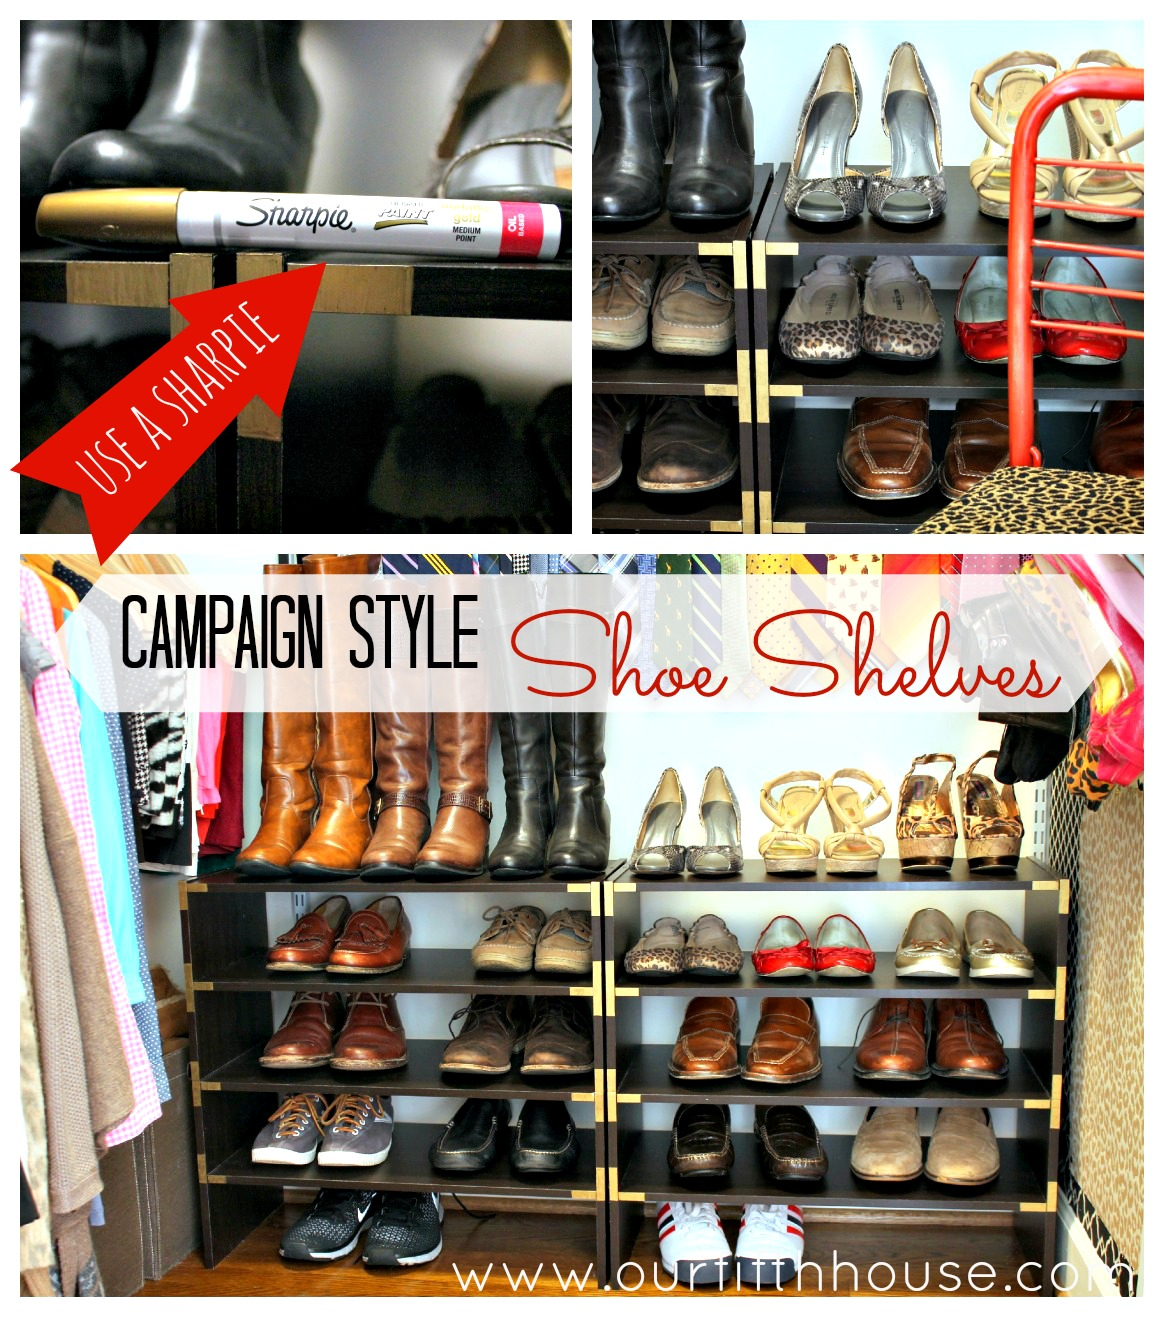 shoe shelves  Looking for an inexpensive  easy diy shoe storage idea. Thinking Outside the Closet  Clothing Storage Ideas for Small